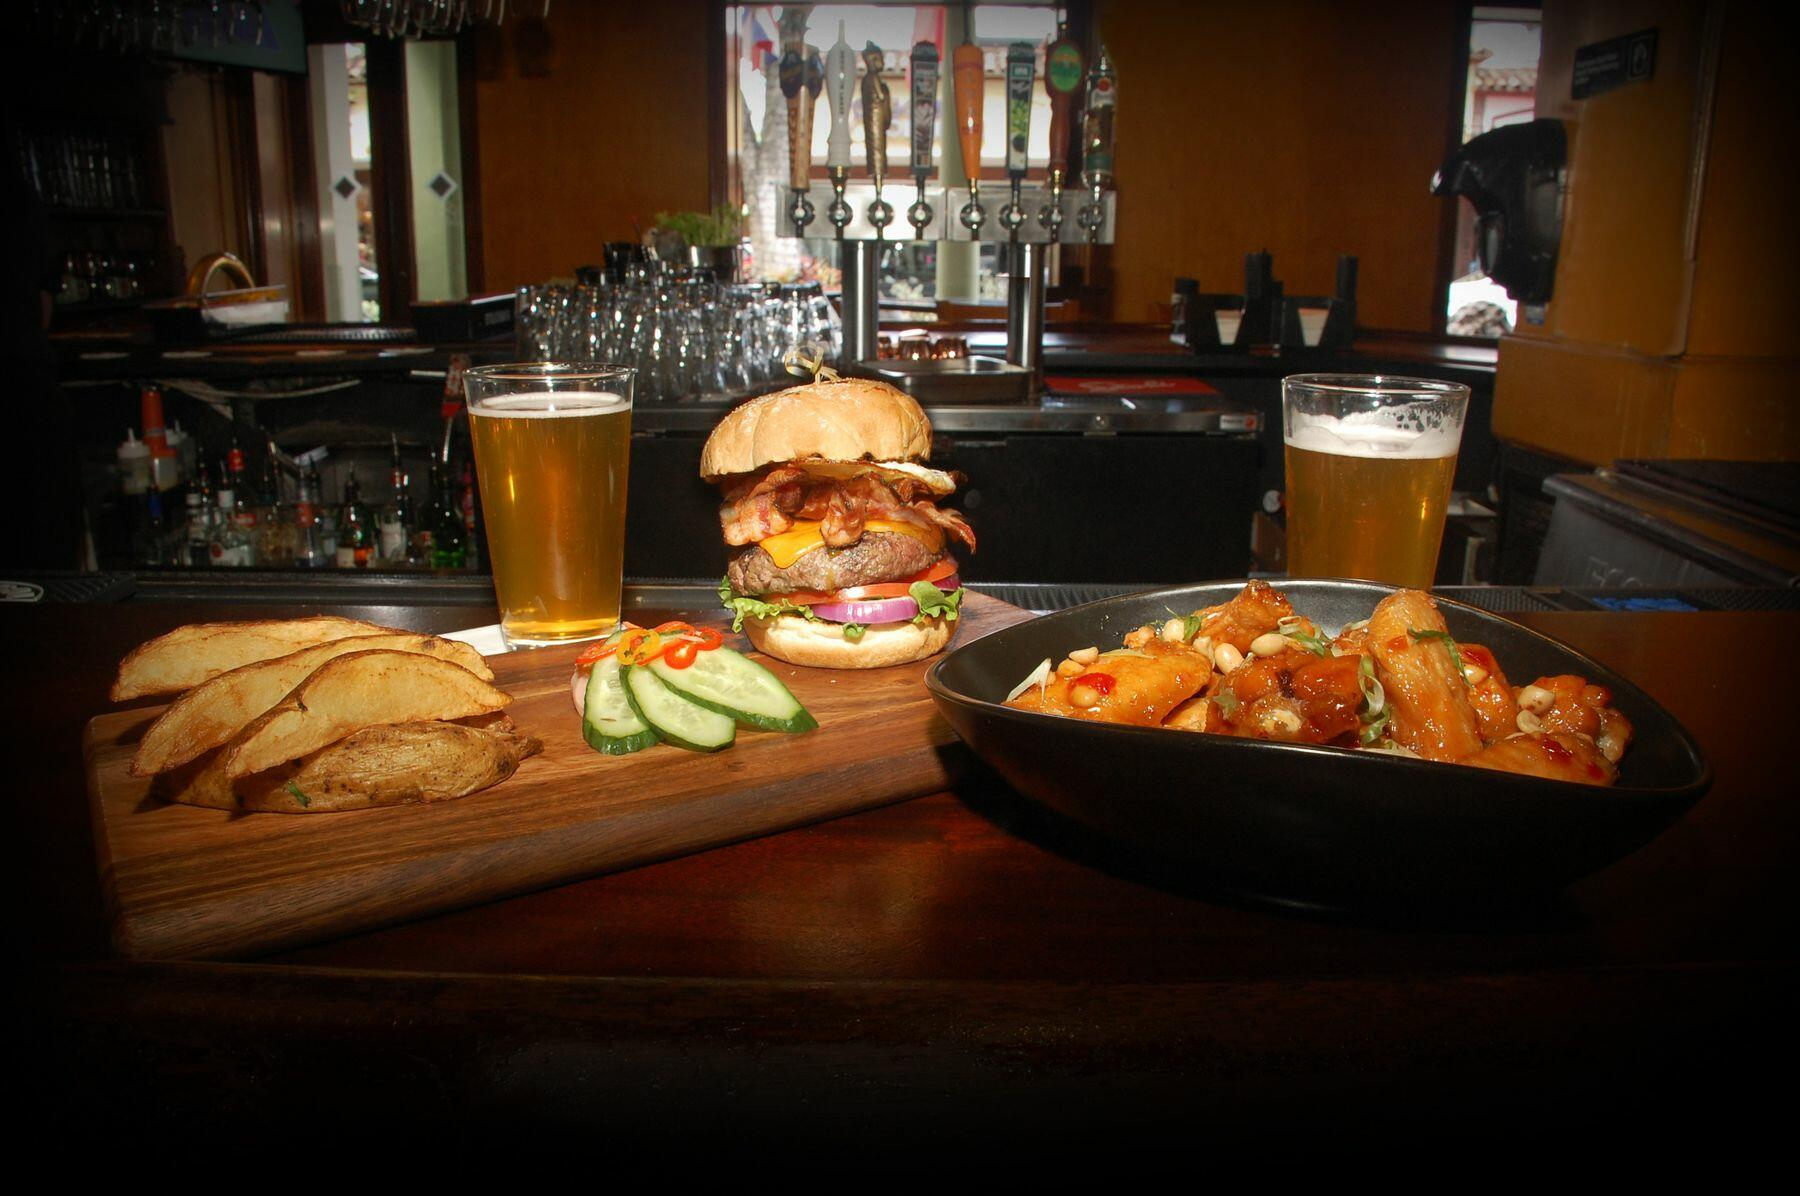 burger, fries and a draft beer